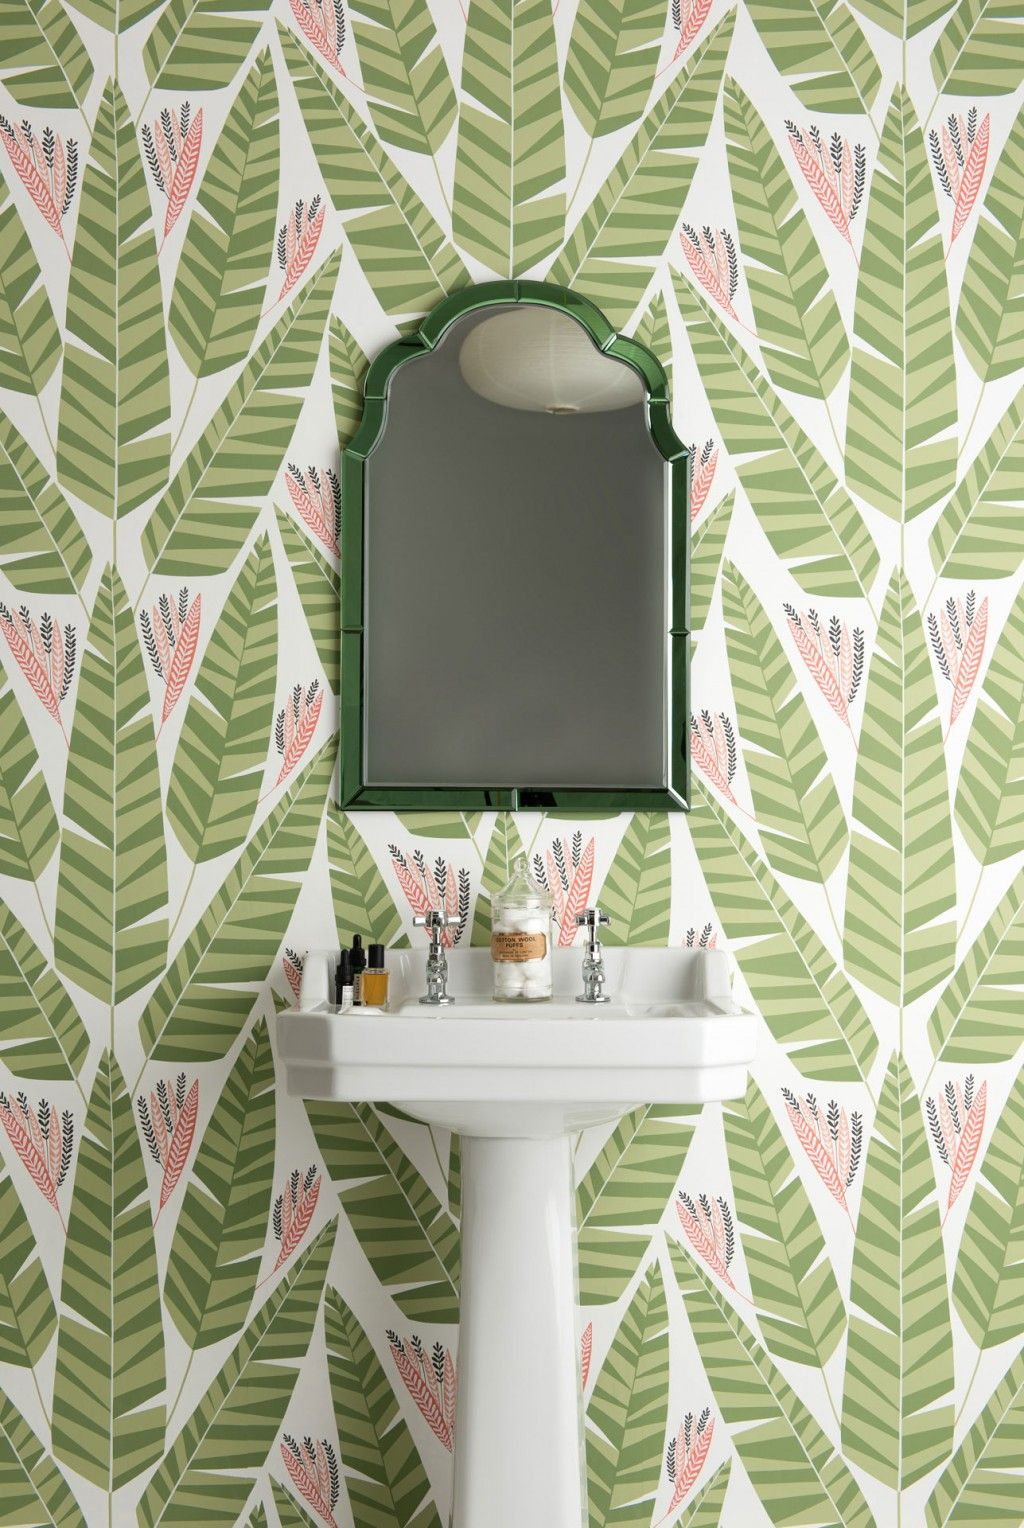 Botanical Bathroom Wallpaper